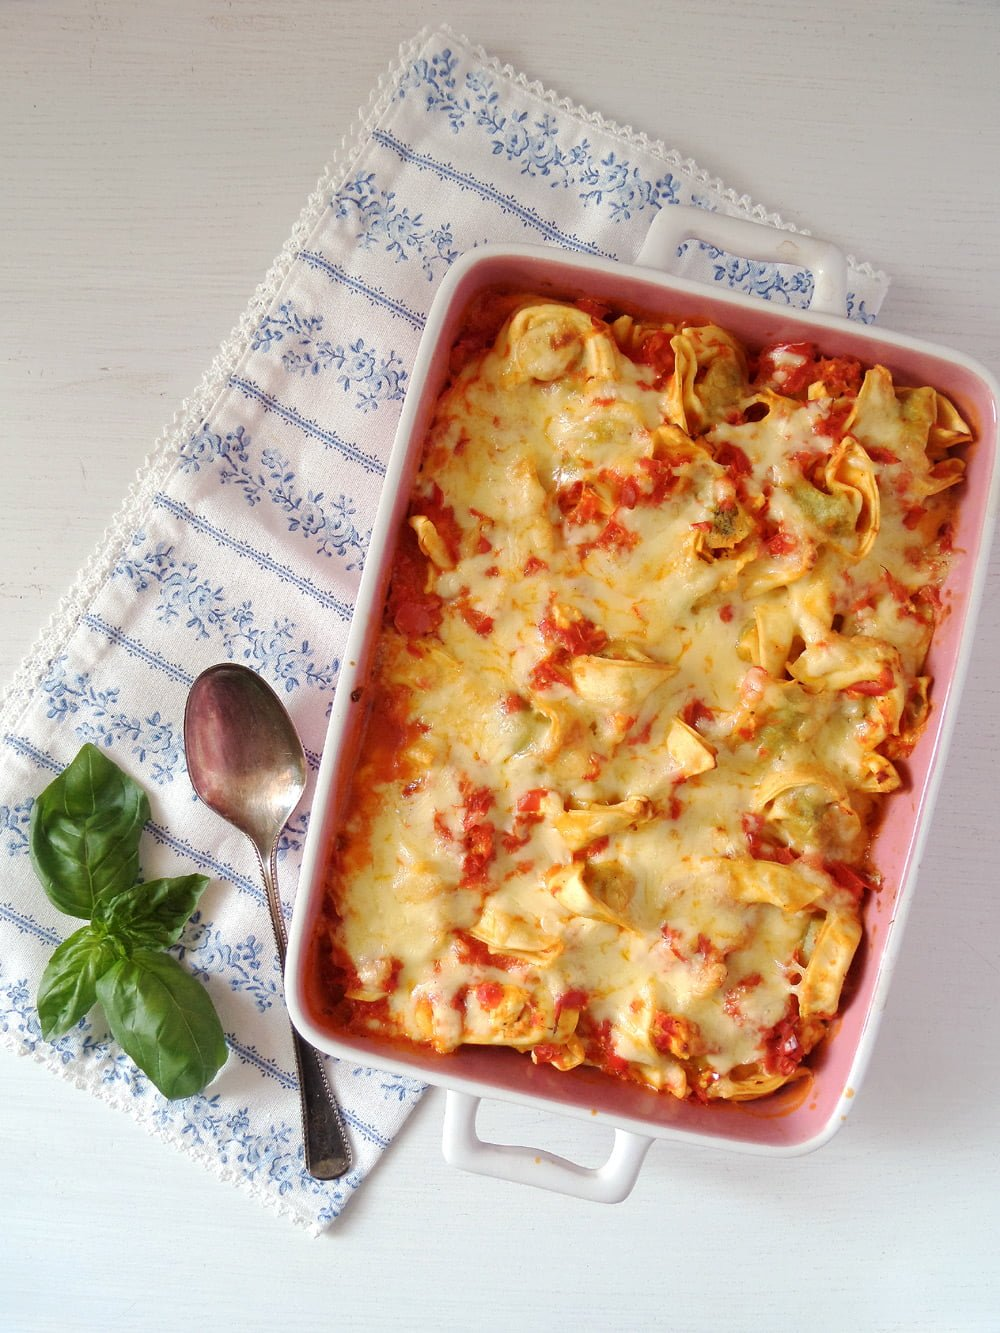 tortellini casserole Easy Cheesy Baked Tortellini Recipe with Vegetables